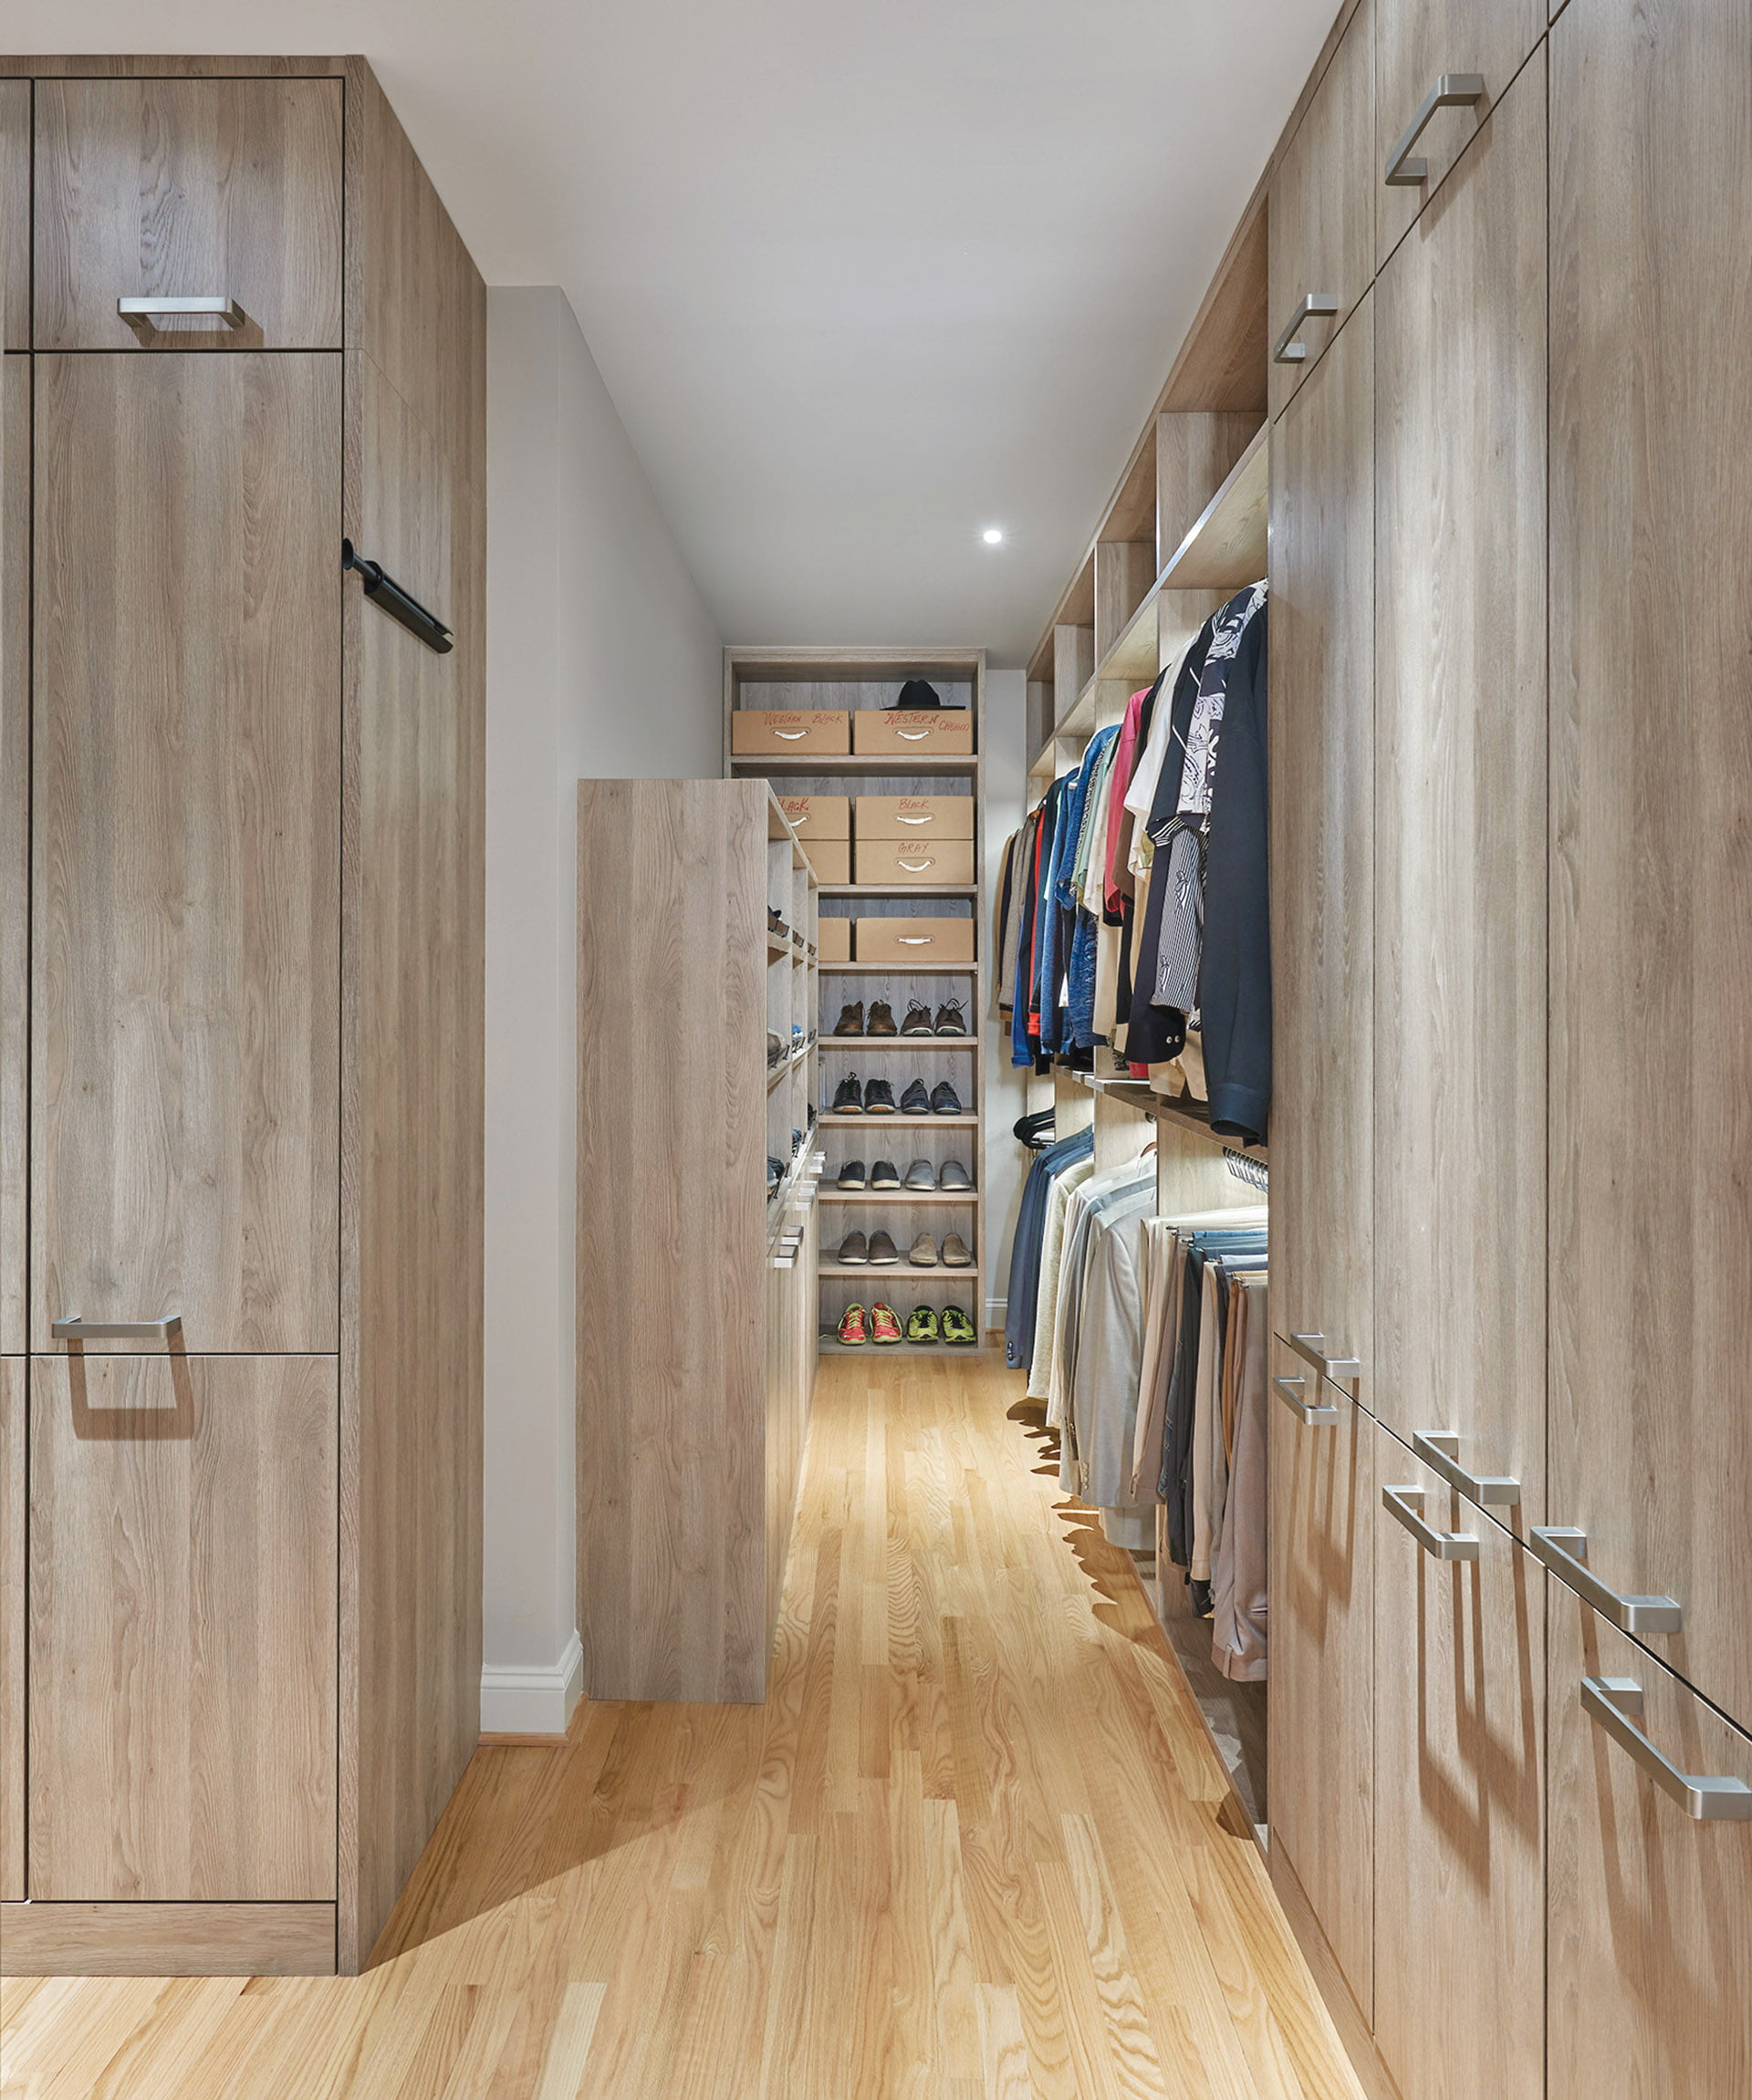 L-shaped closet stores shoes and clothing.